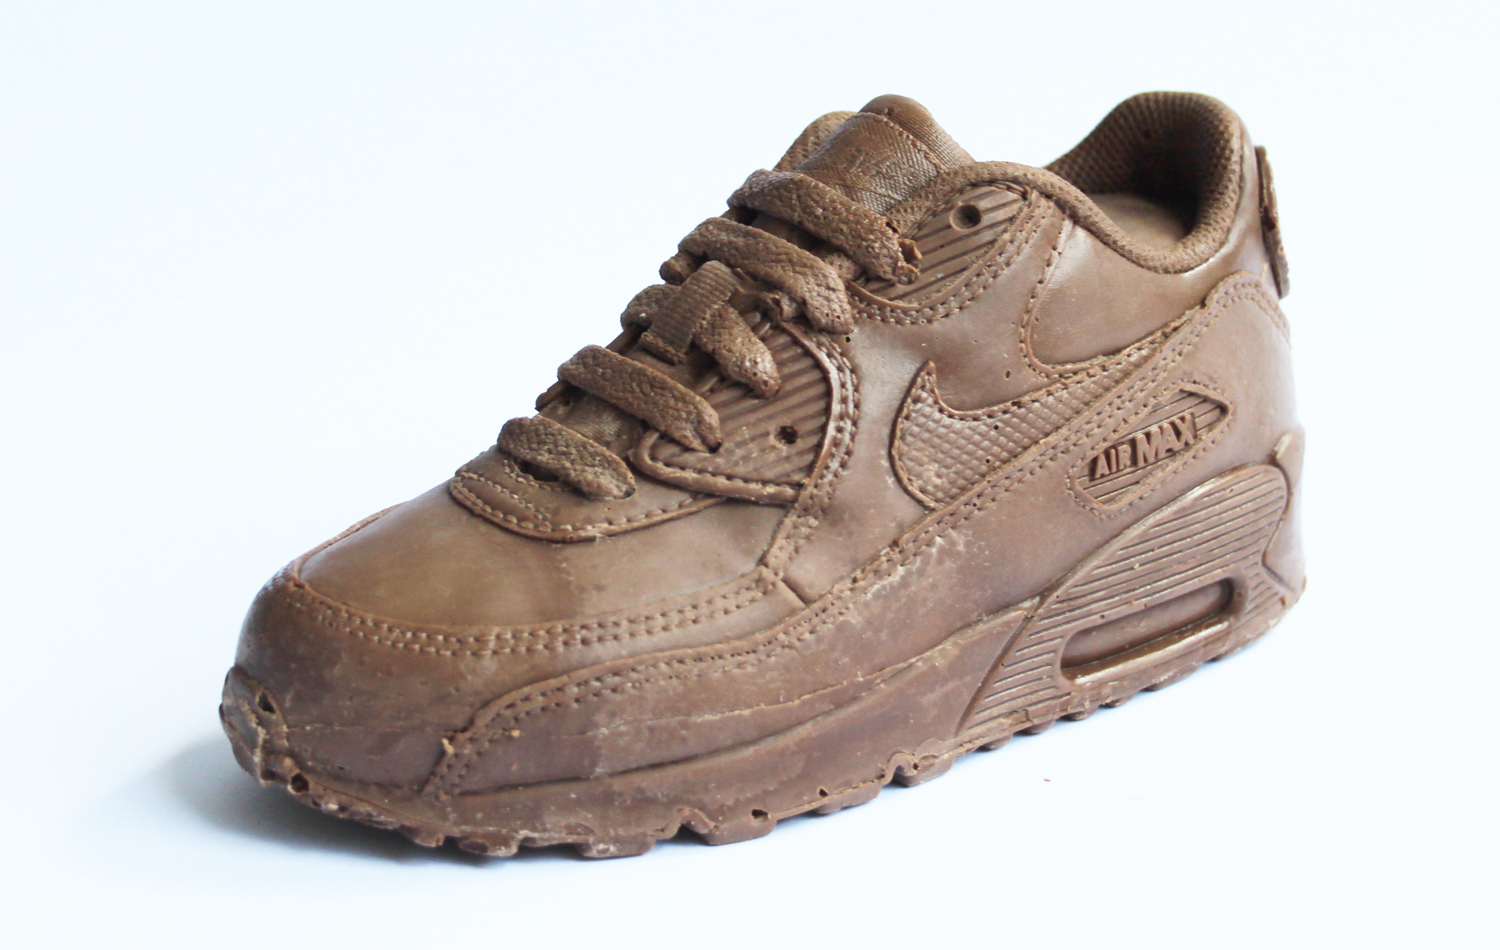 499c526af373 Someone Actually Made an All-Chocolate Nike Air Max 90